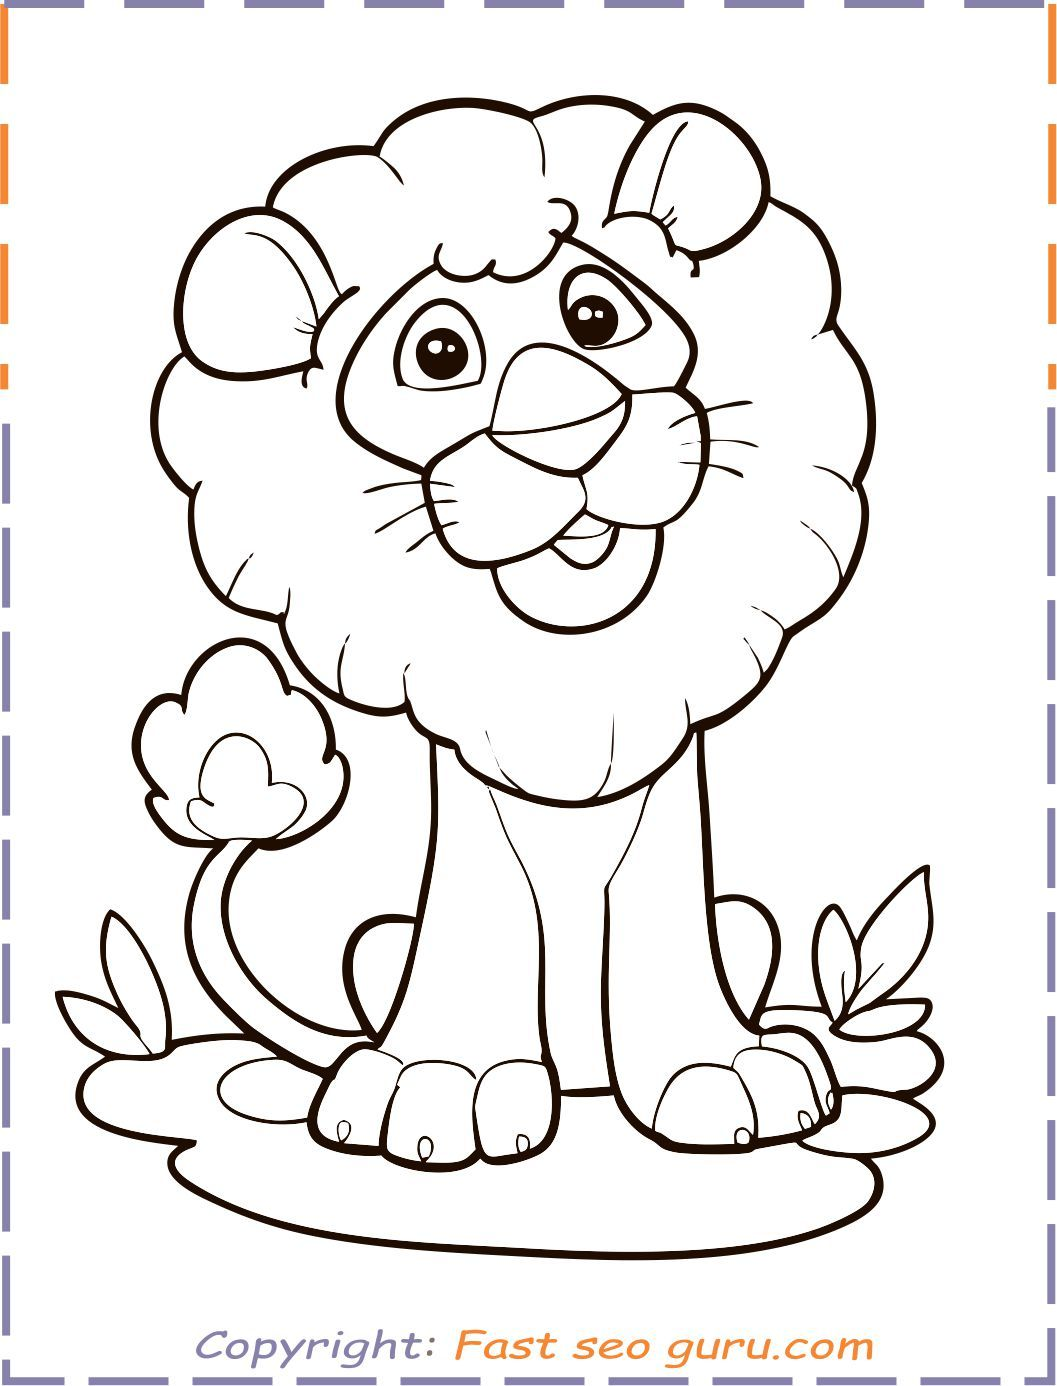 Coloring In Pages Animals Lion Print Out Lion Coloring Pages Animal Coloring Pages Puppy Coloring Pages